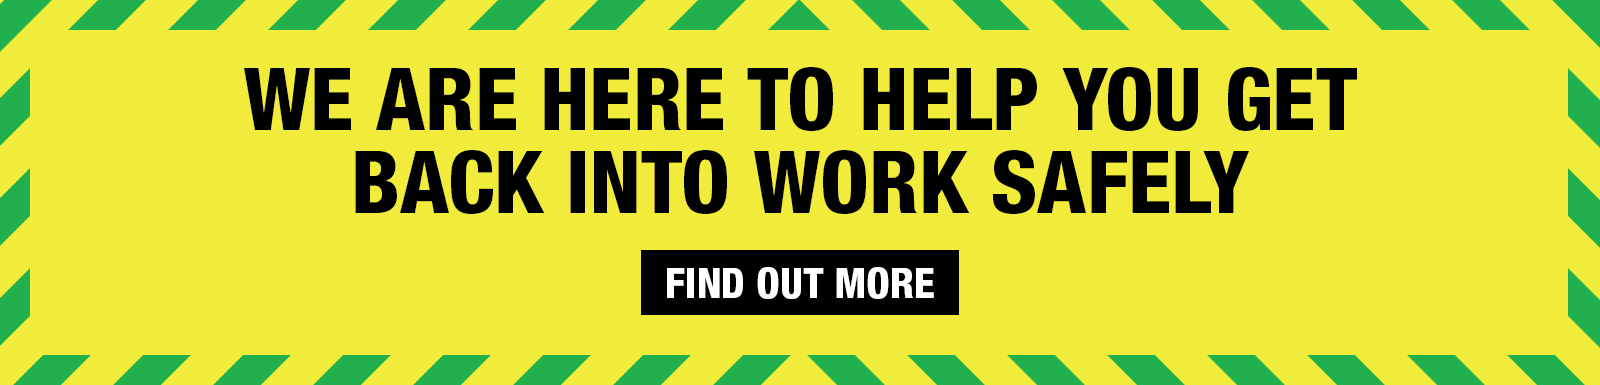 We are here to help you get back into work safely